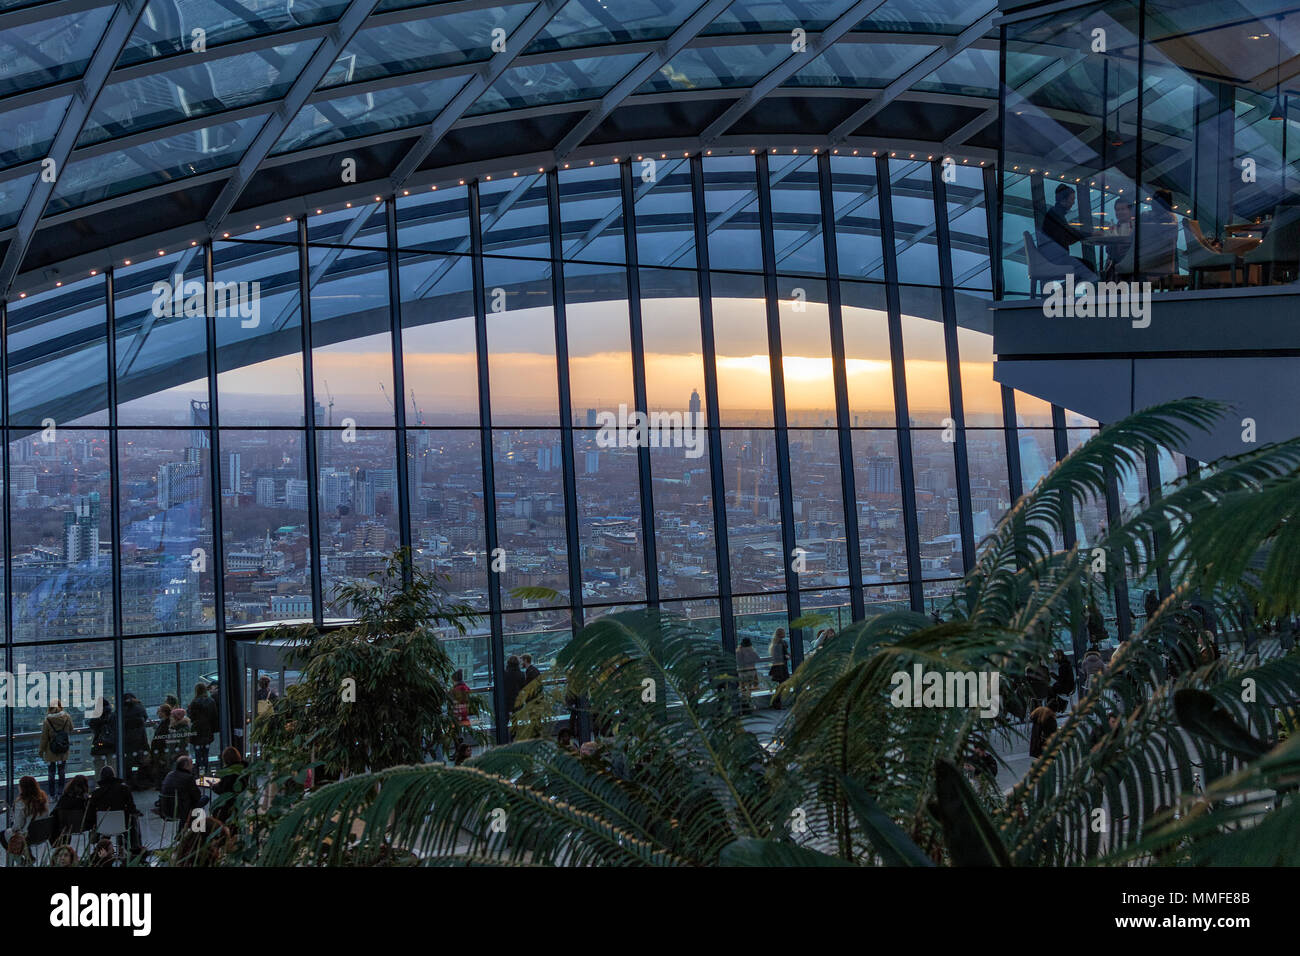 The Sky Garden at sunset at the top of the 20 Fenchurch Street skyscraper (the Walkie-Talkie building), London, England, UK. - Stock Image